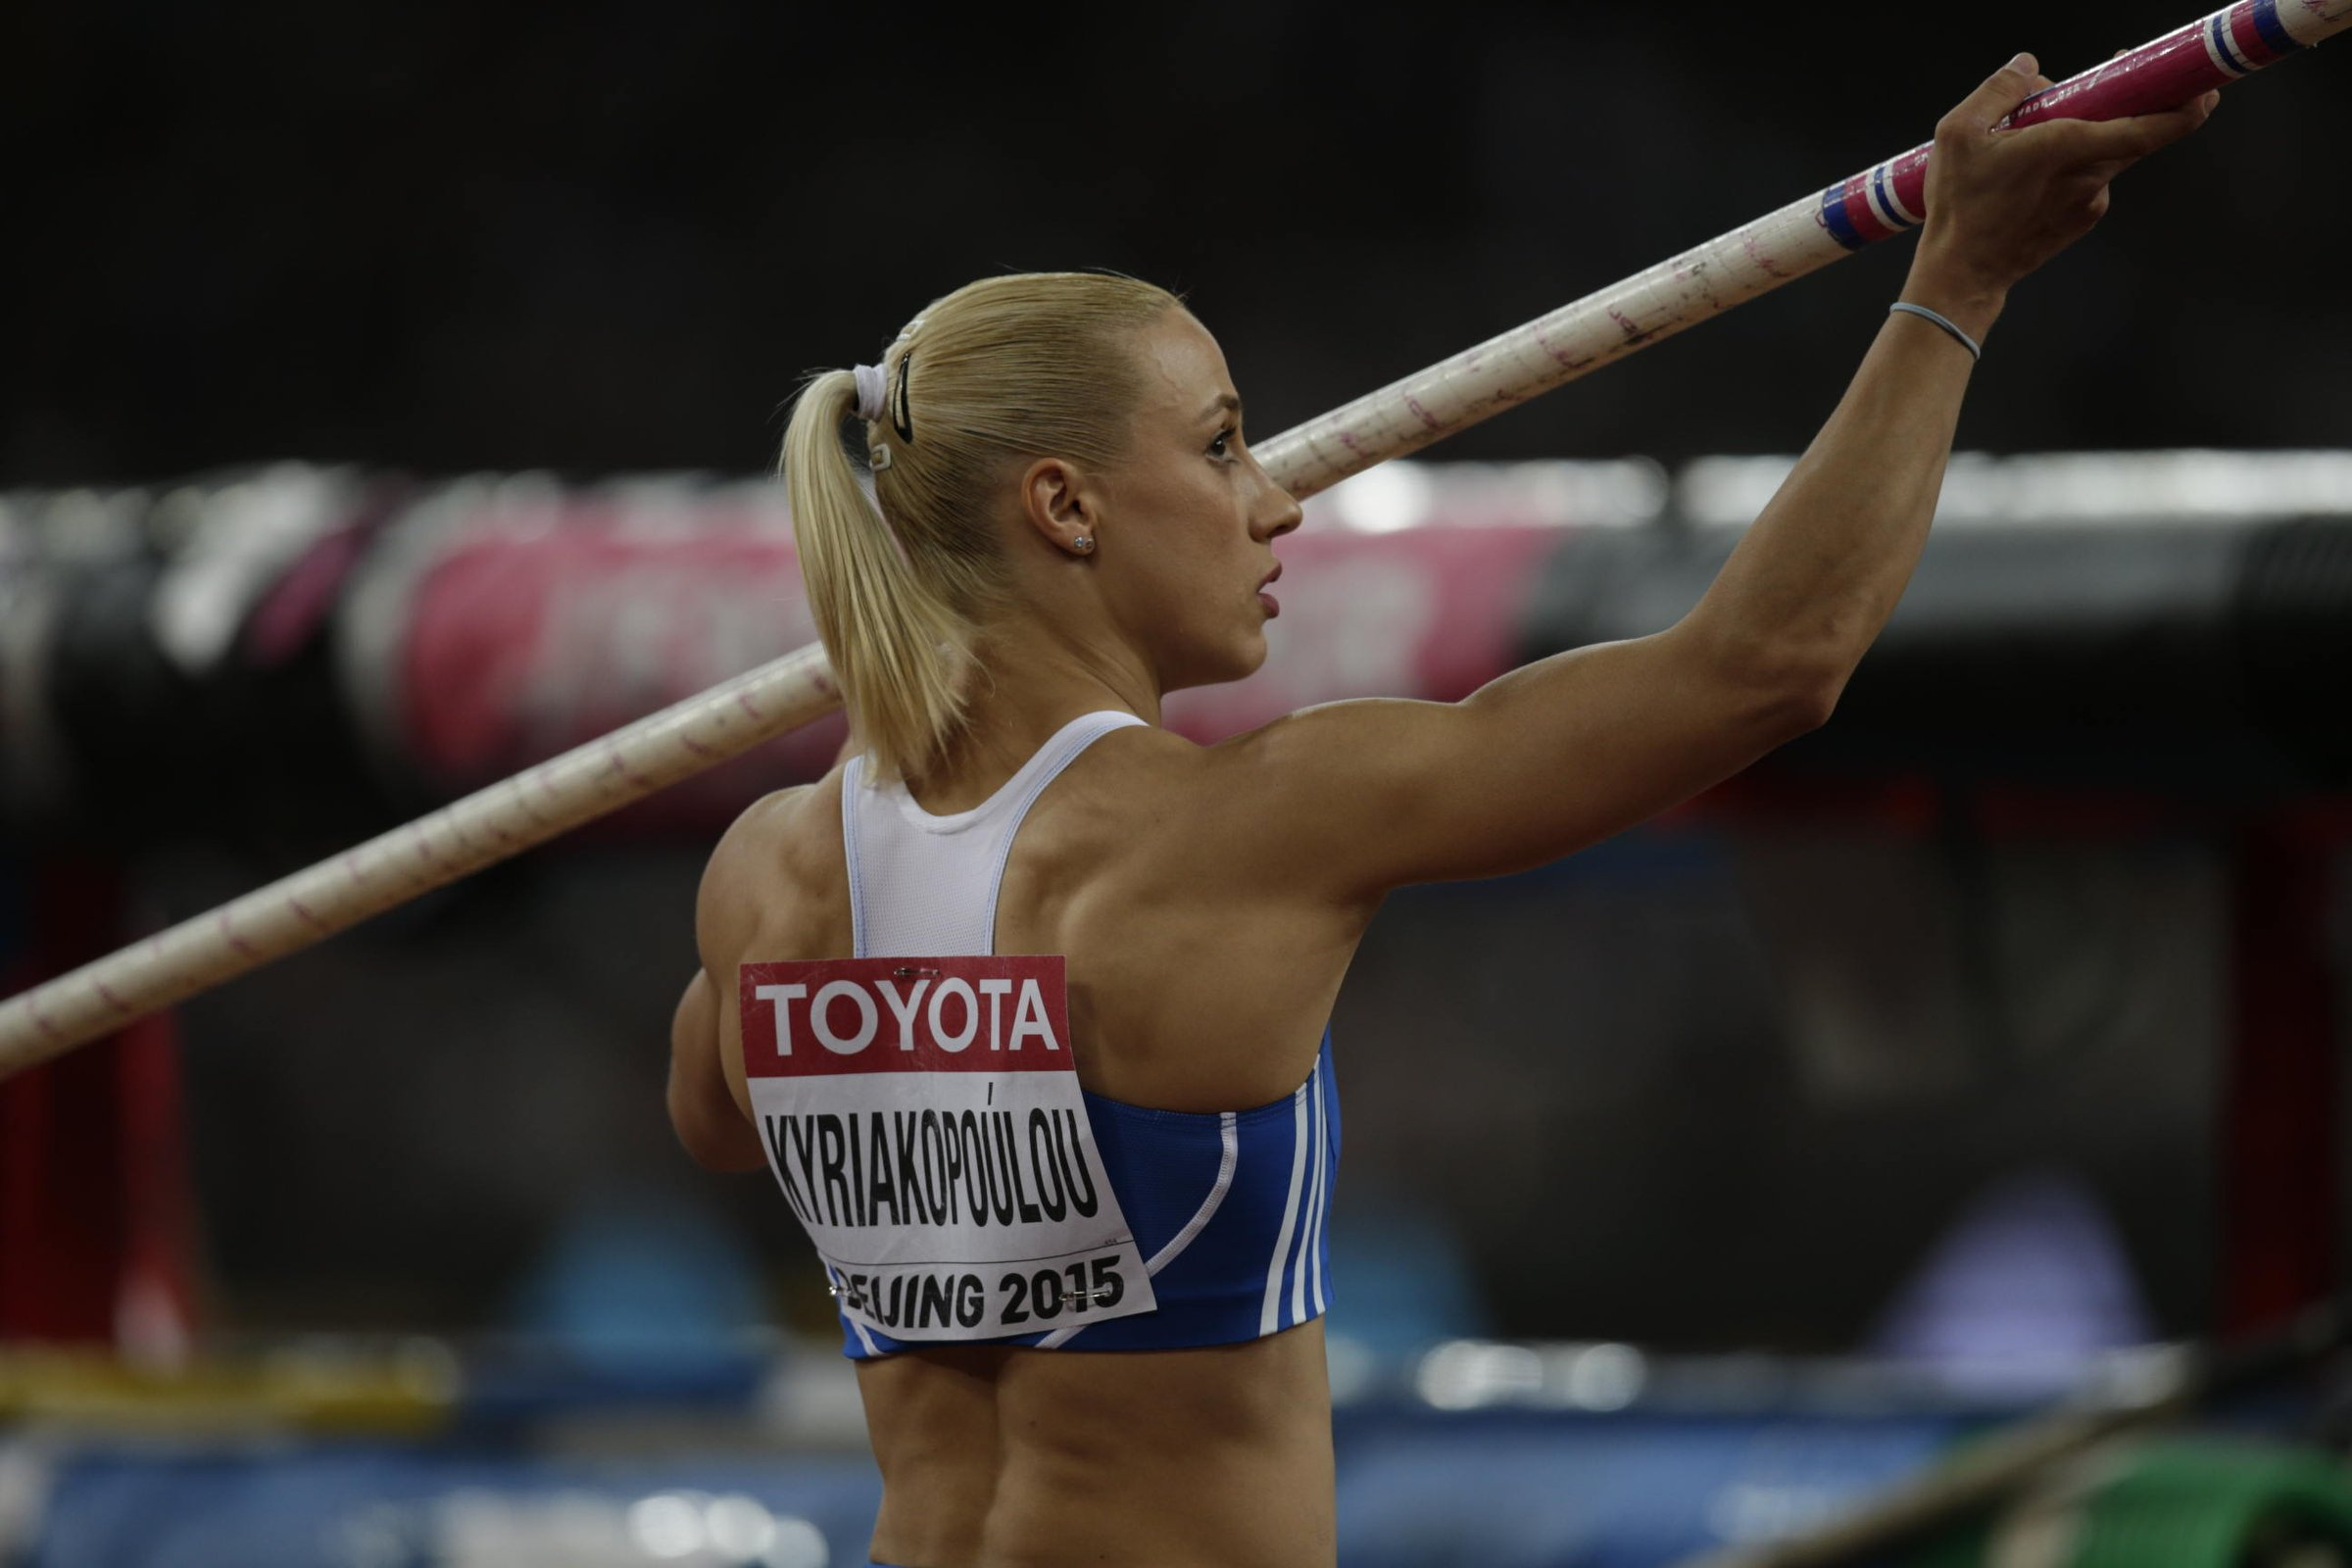 Nikoléta Kyriakopoulou of Greece gets ready for another attempt before winning a bronze medal.